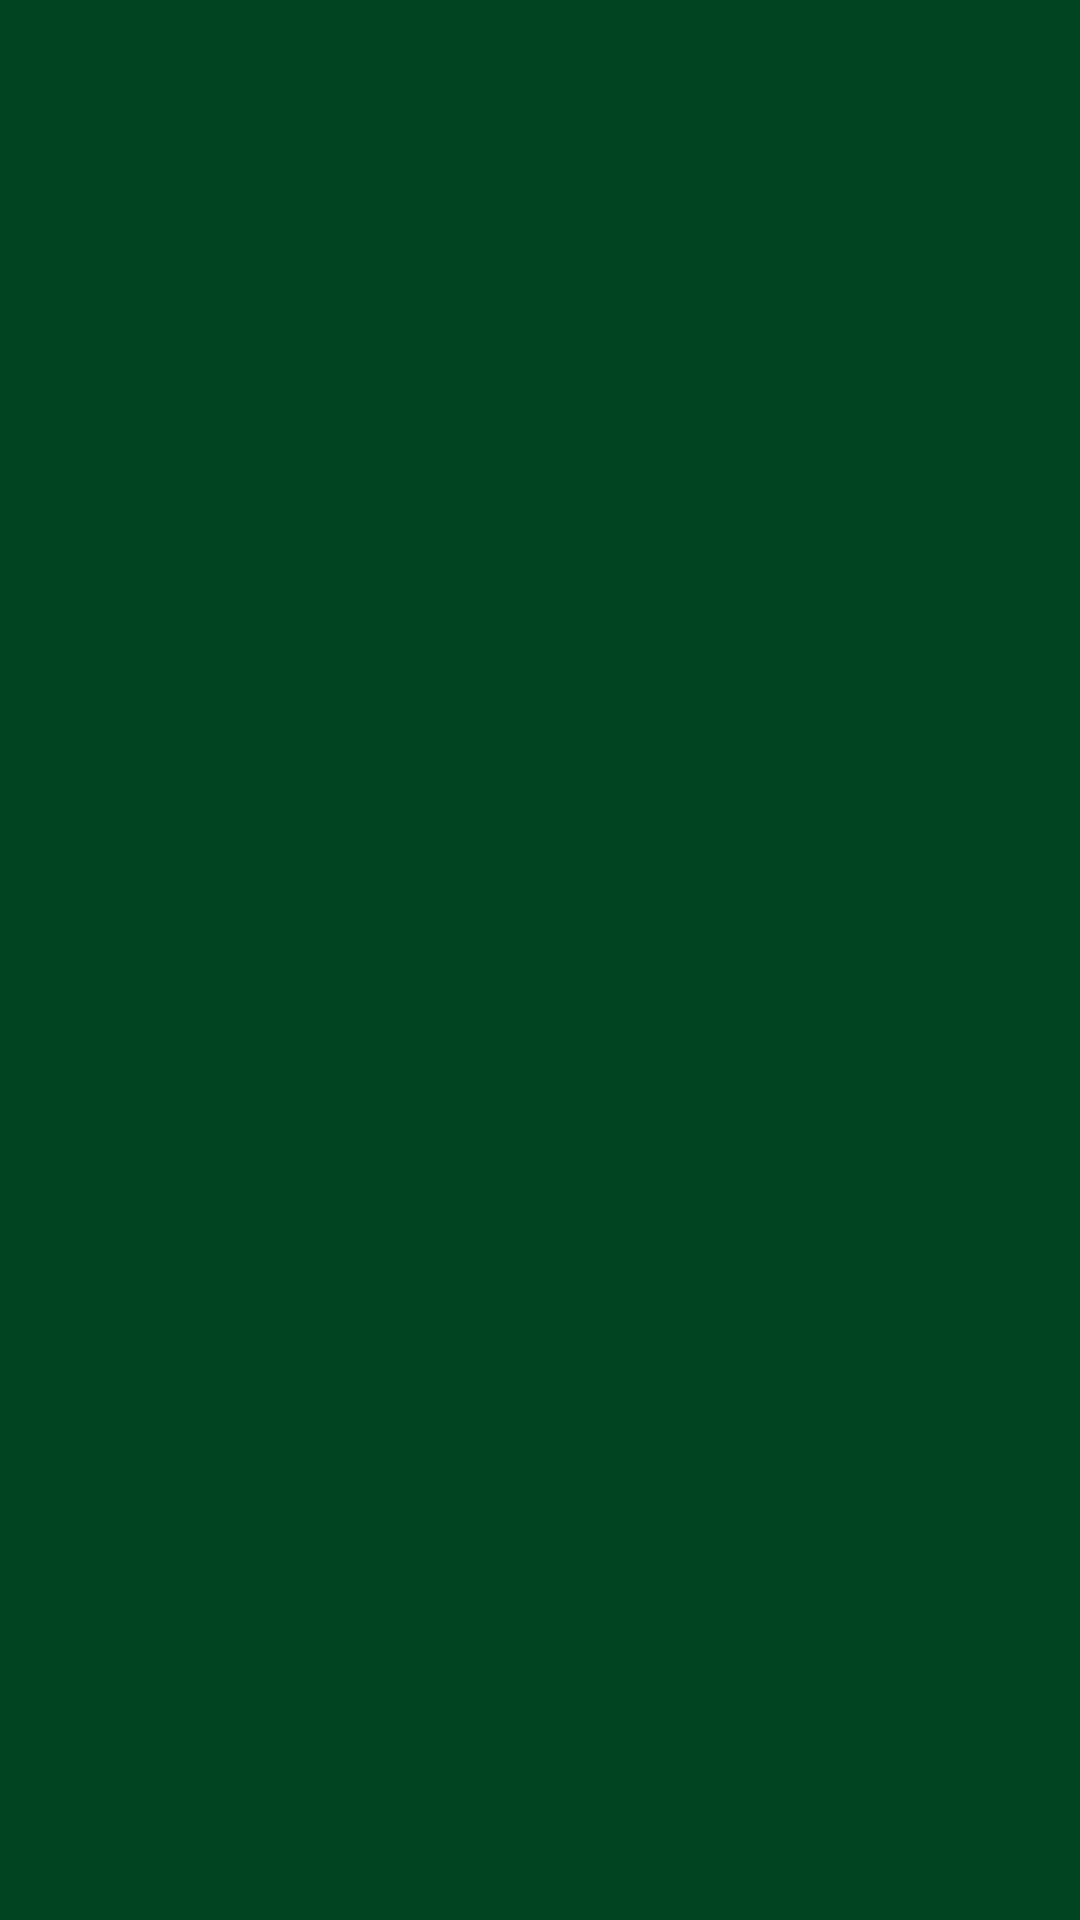 1080x1920 UP Forest Green Solid Color Background